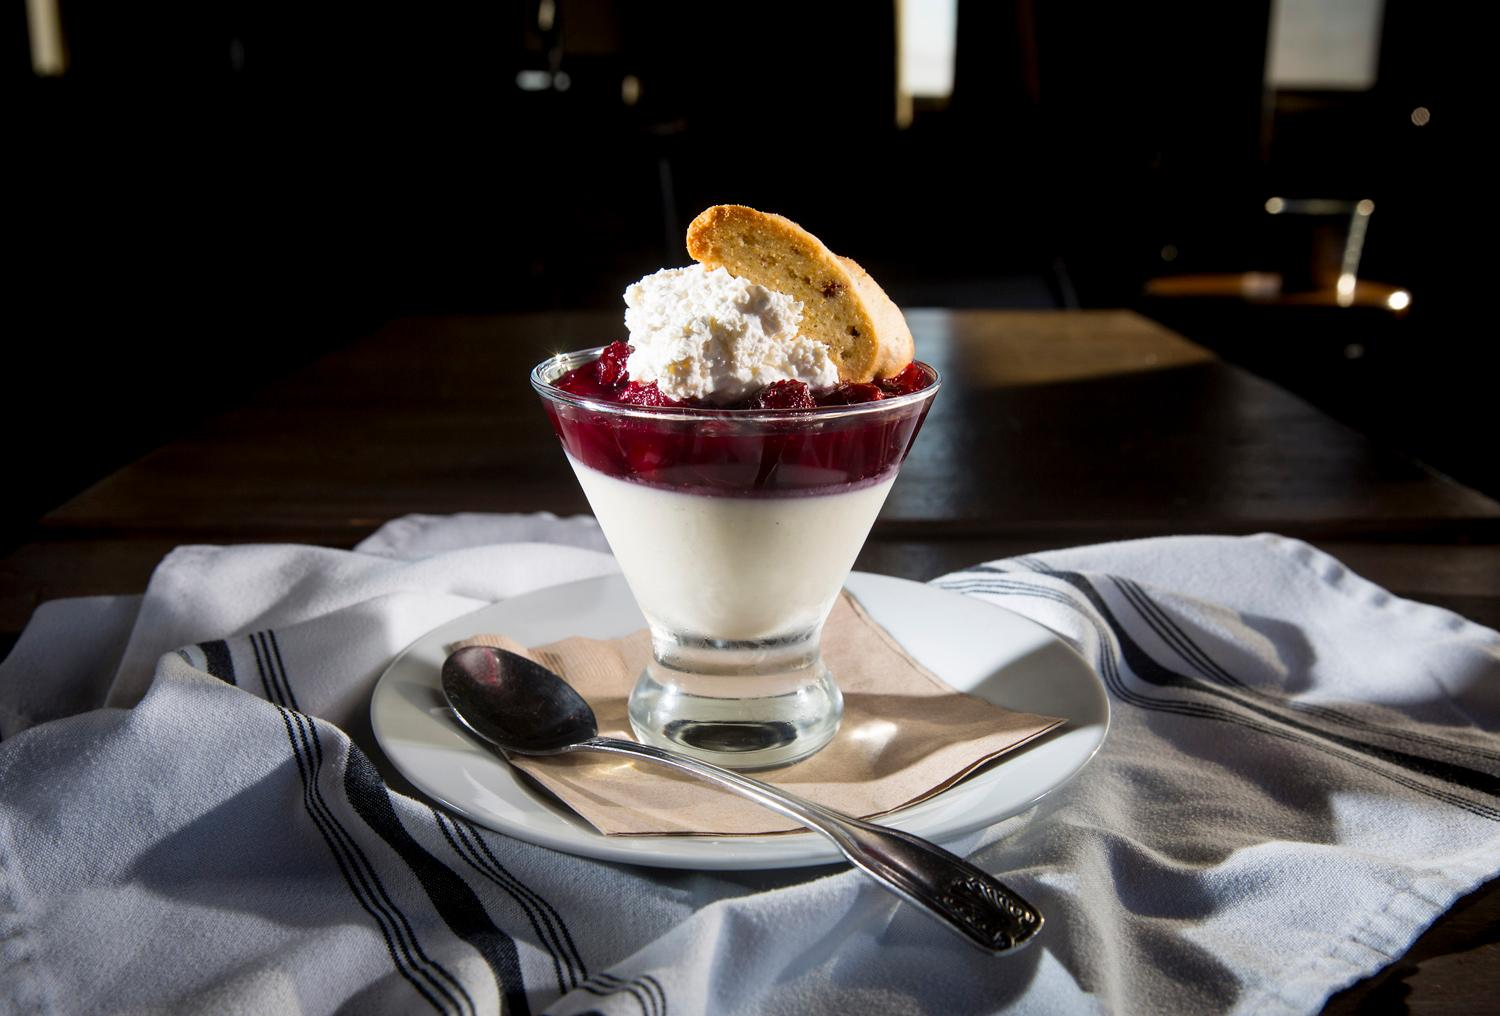 The boggy dream, with cardamom panna cotta, cranberry conserved, whipped cream, and Starvation Alley biscotti, at Pickled Fish, located at 409 Sid Snyder Dr, Long Beach, WA. (Sy Bean / Seattle Refined)